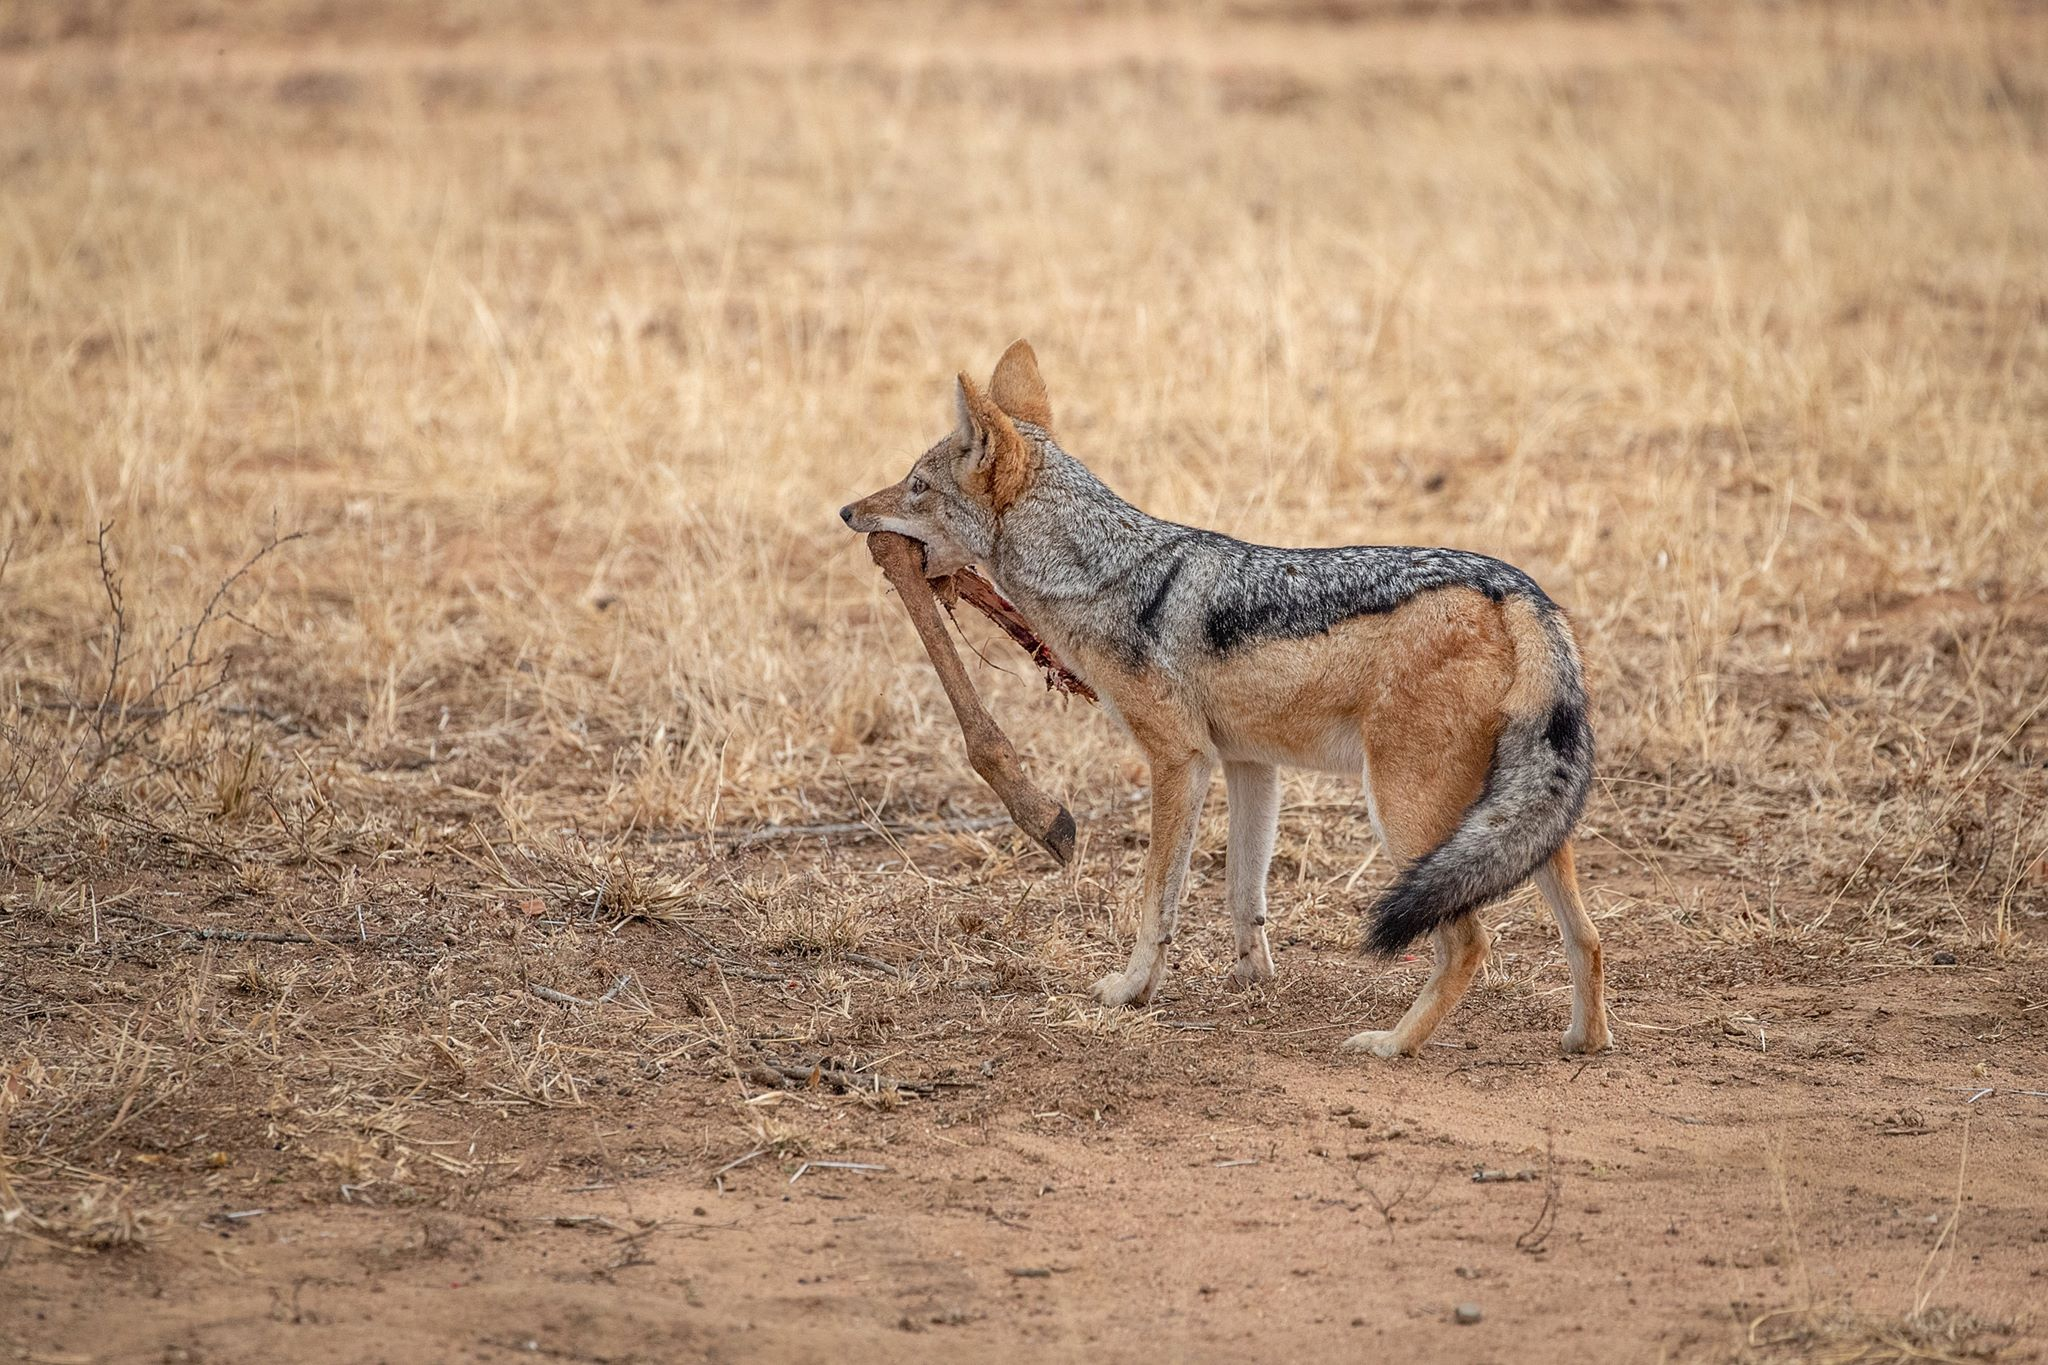 <h5>Blacked-backed Jackal Stealing Leftovers</h5><p>Colour print by Steve Bancroft</p>